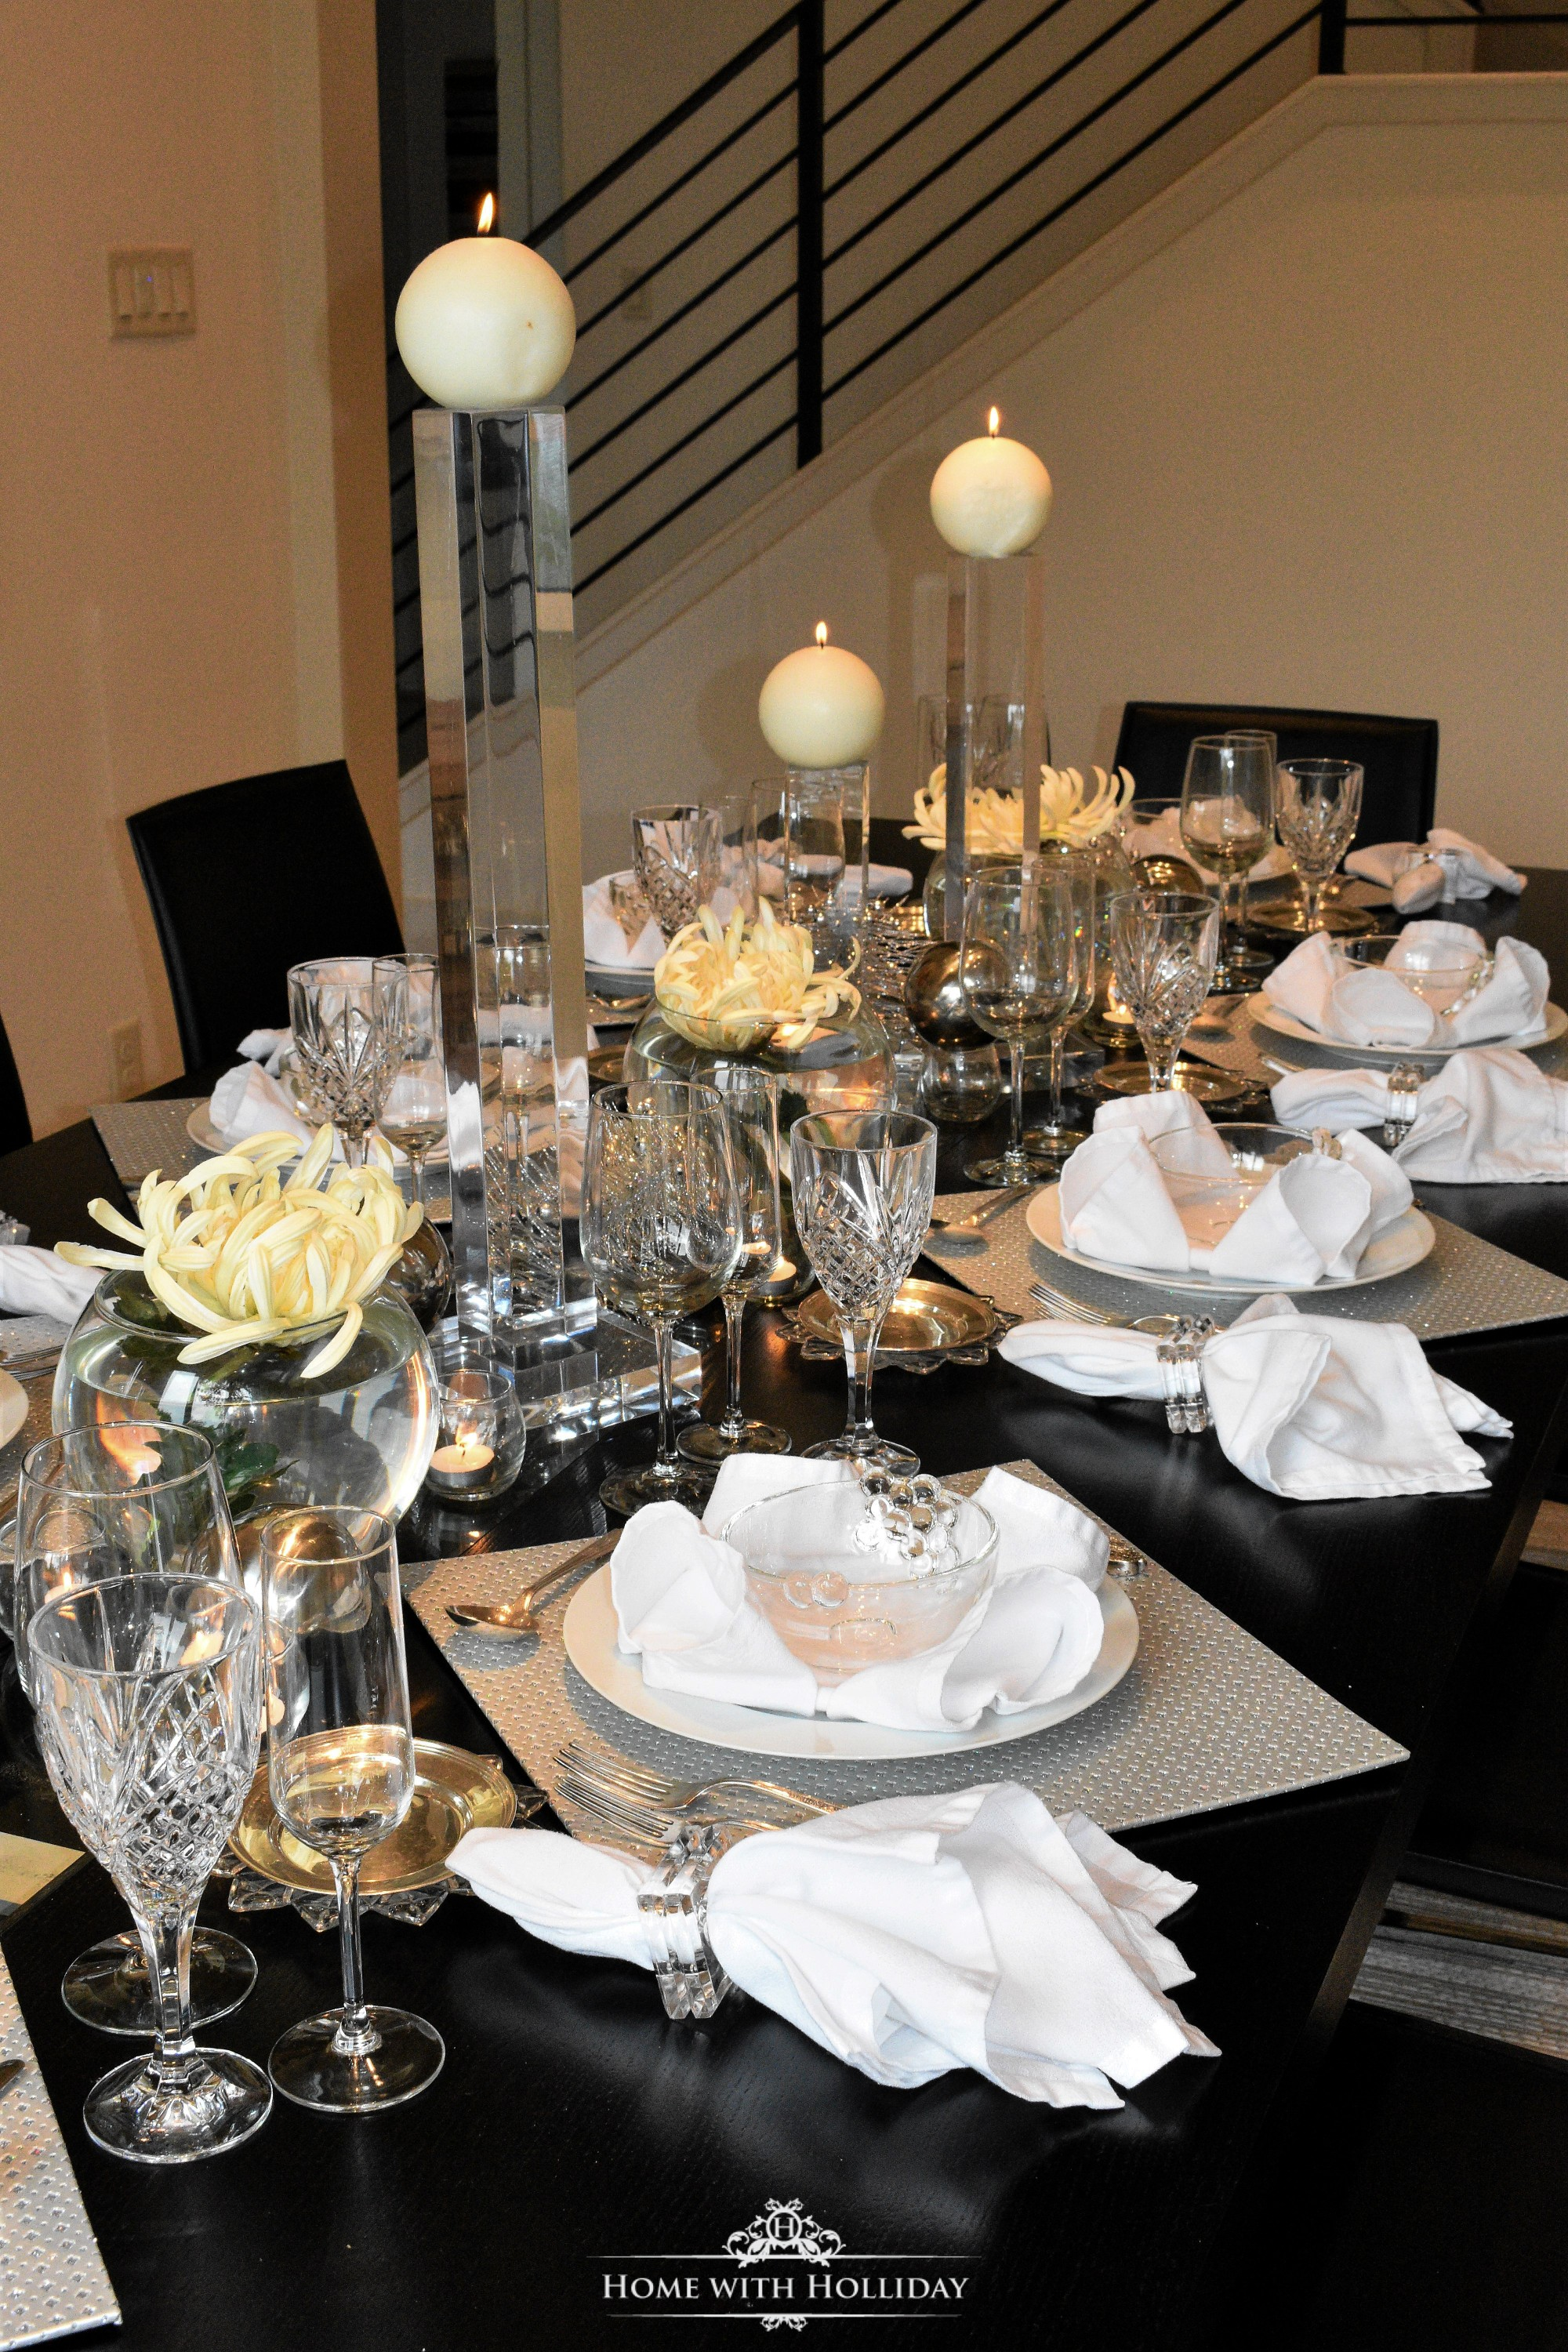 & Silver and White New Yearu0027s Eve Table Setting - Home with Holliday